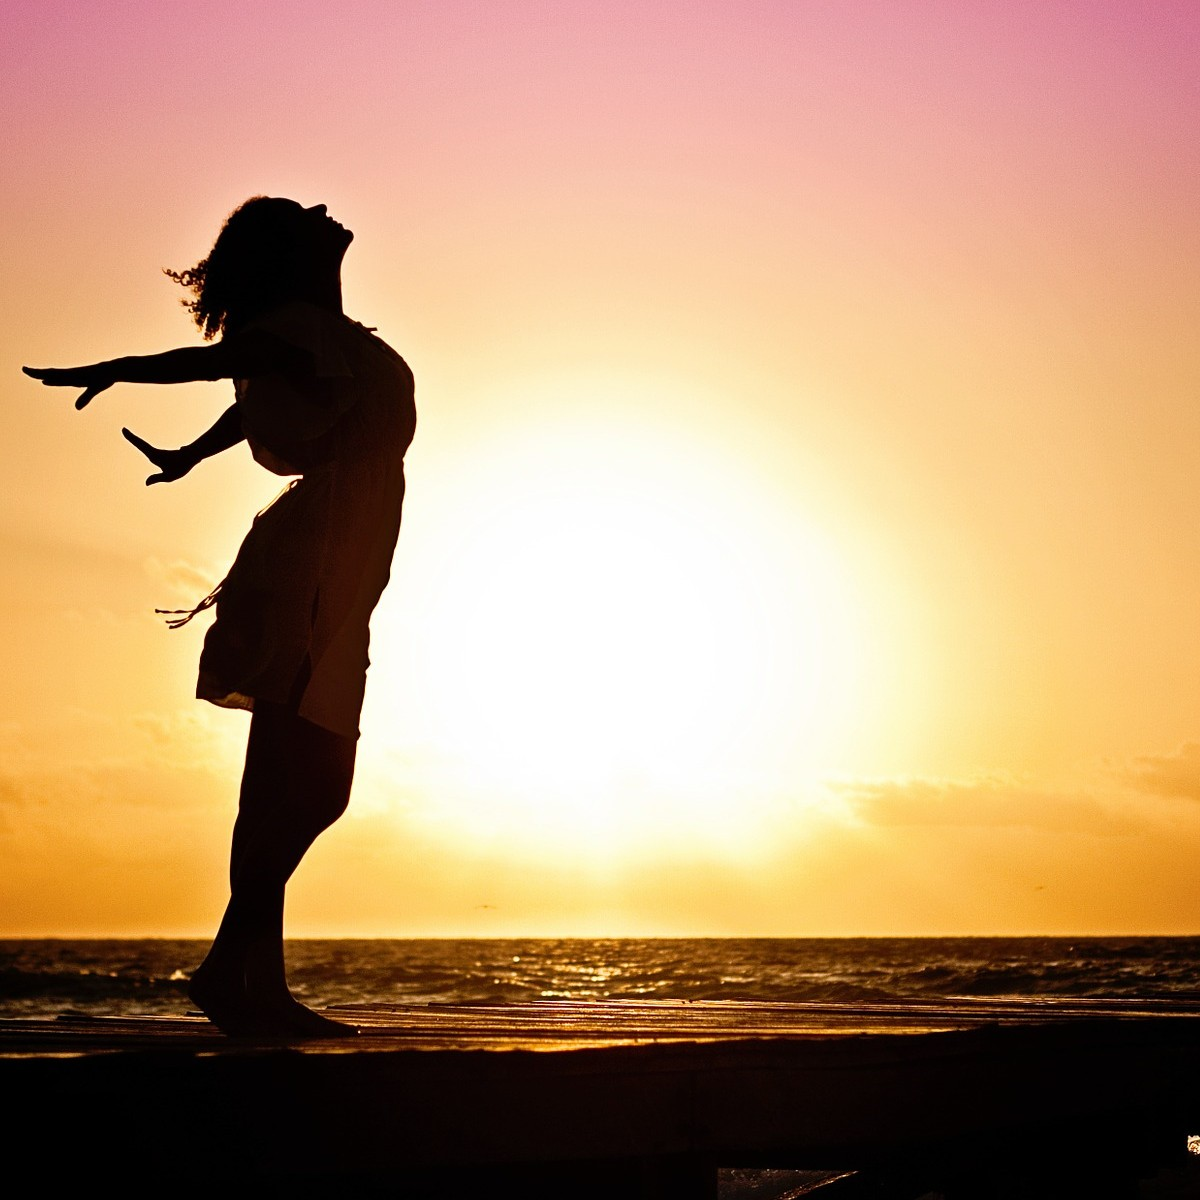 Woman on a beach during sunset with her arms outstretched